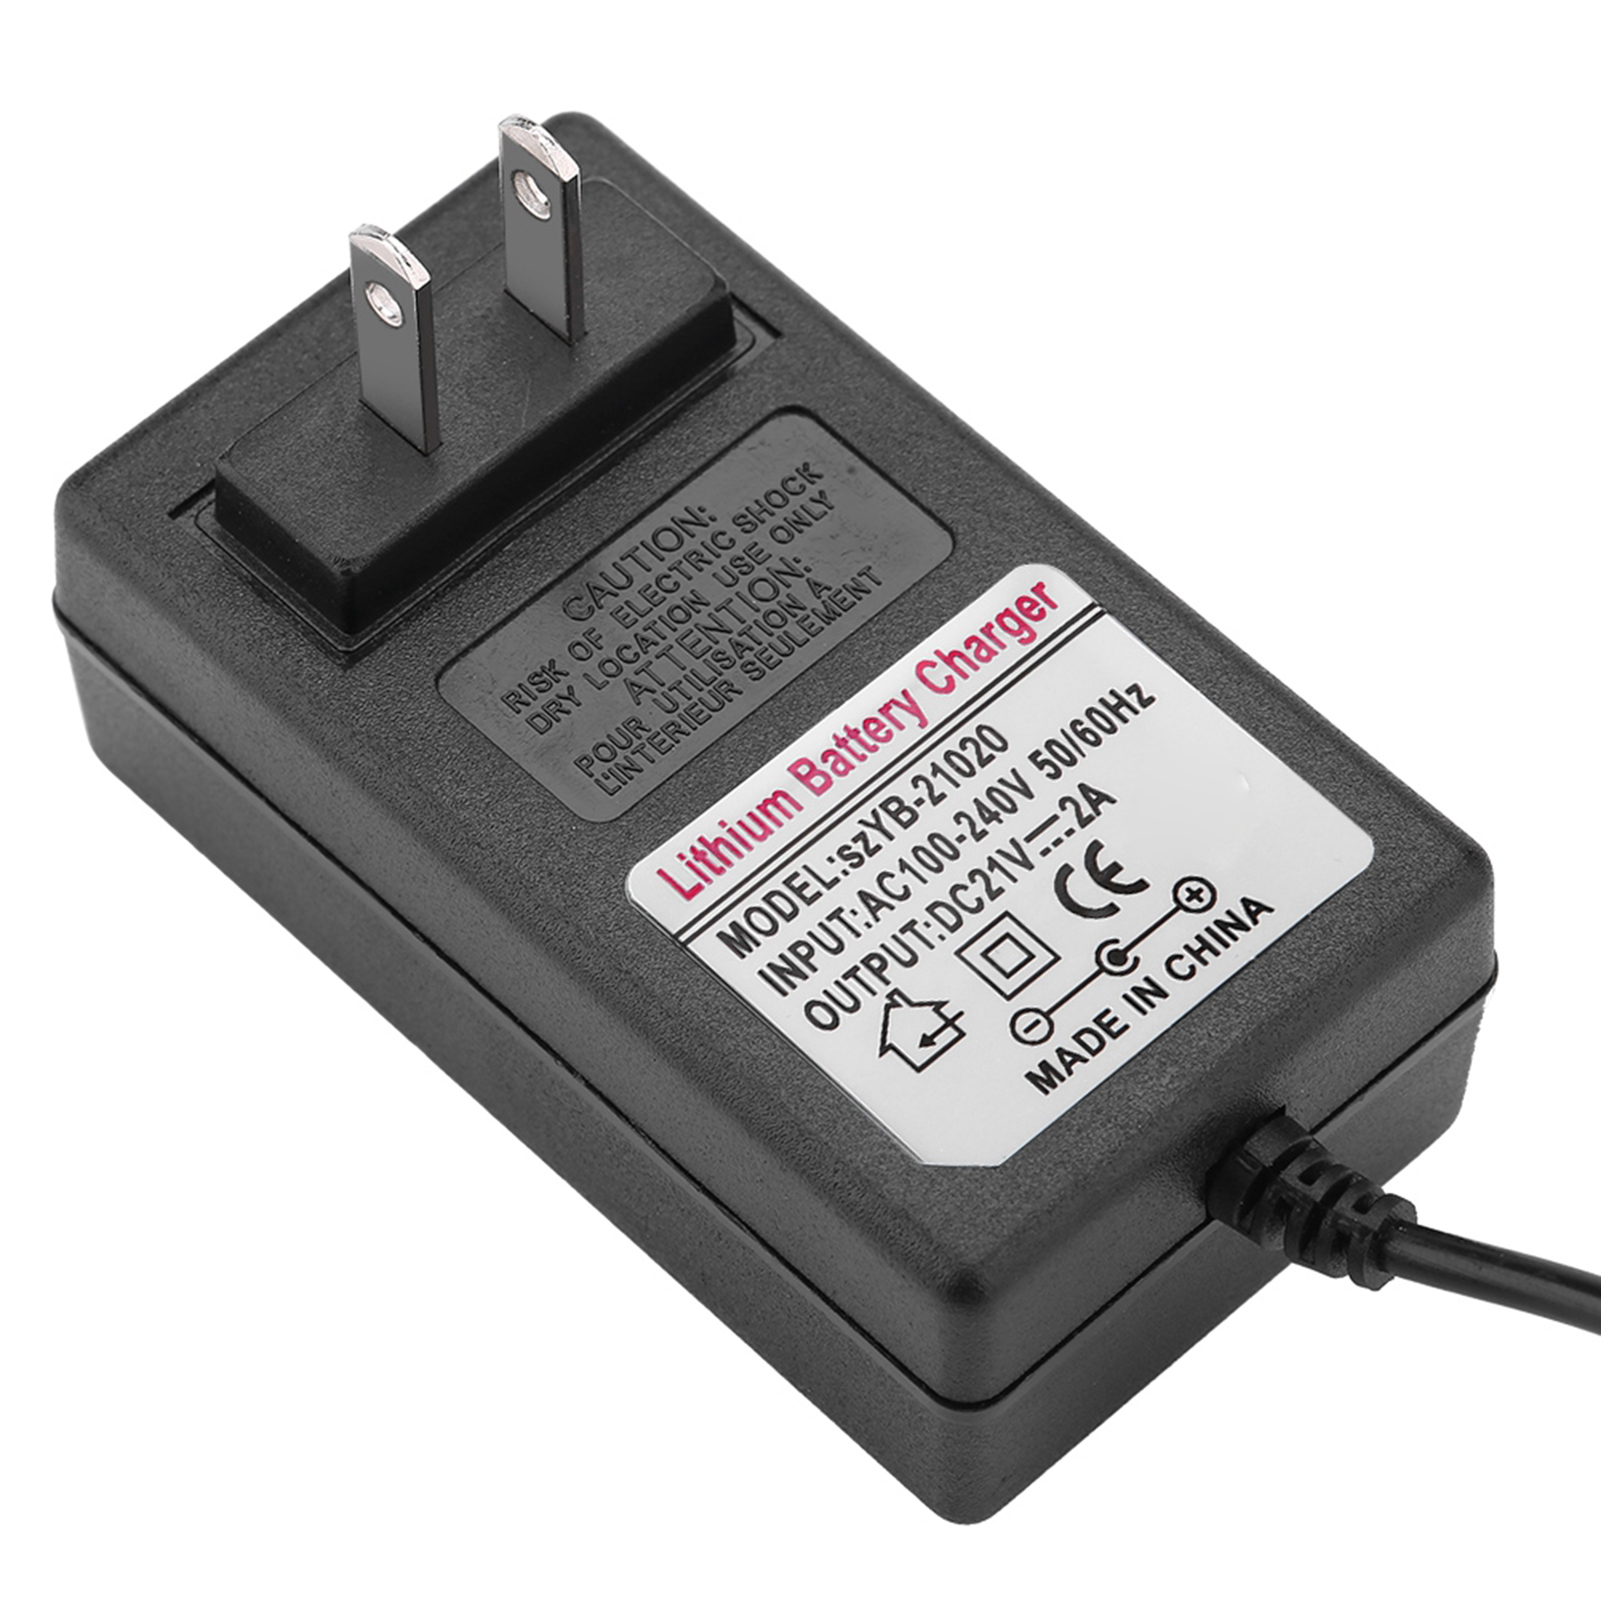 AC-DC-16-8V-21V-2A-Charger-Adapter-for-4S-18650-Li-ion-LiPo-Lithium-Battery-Pack thumbnail 23